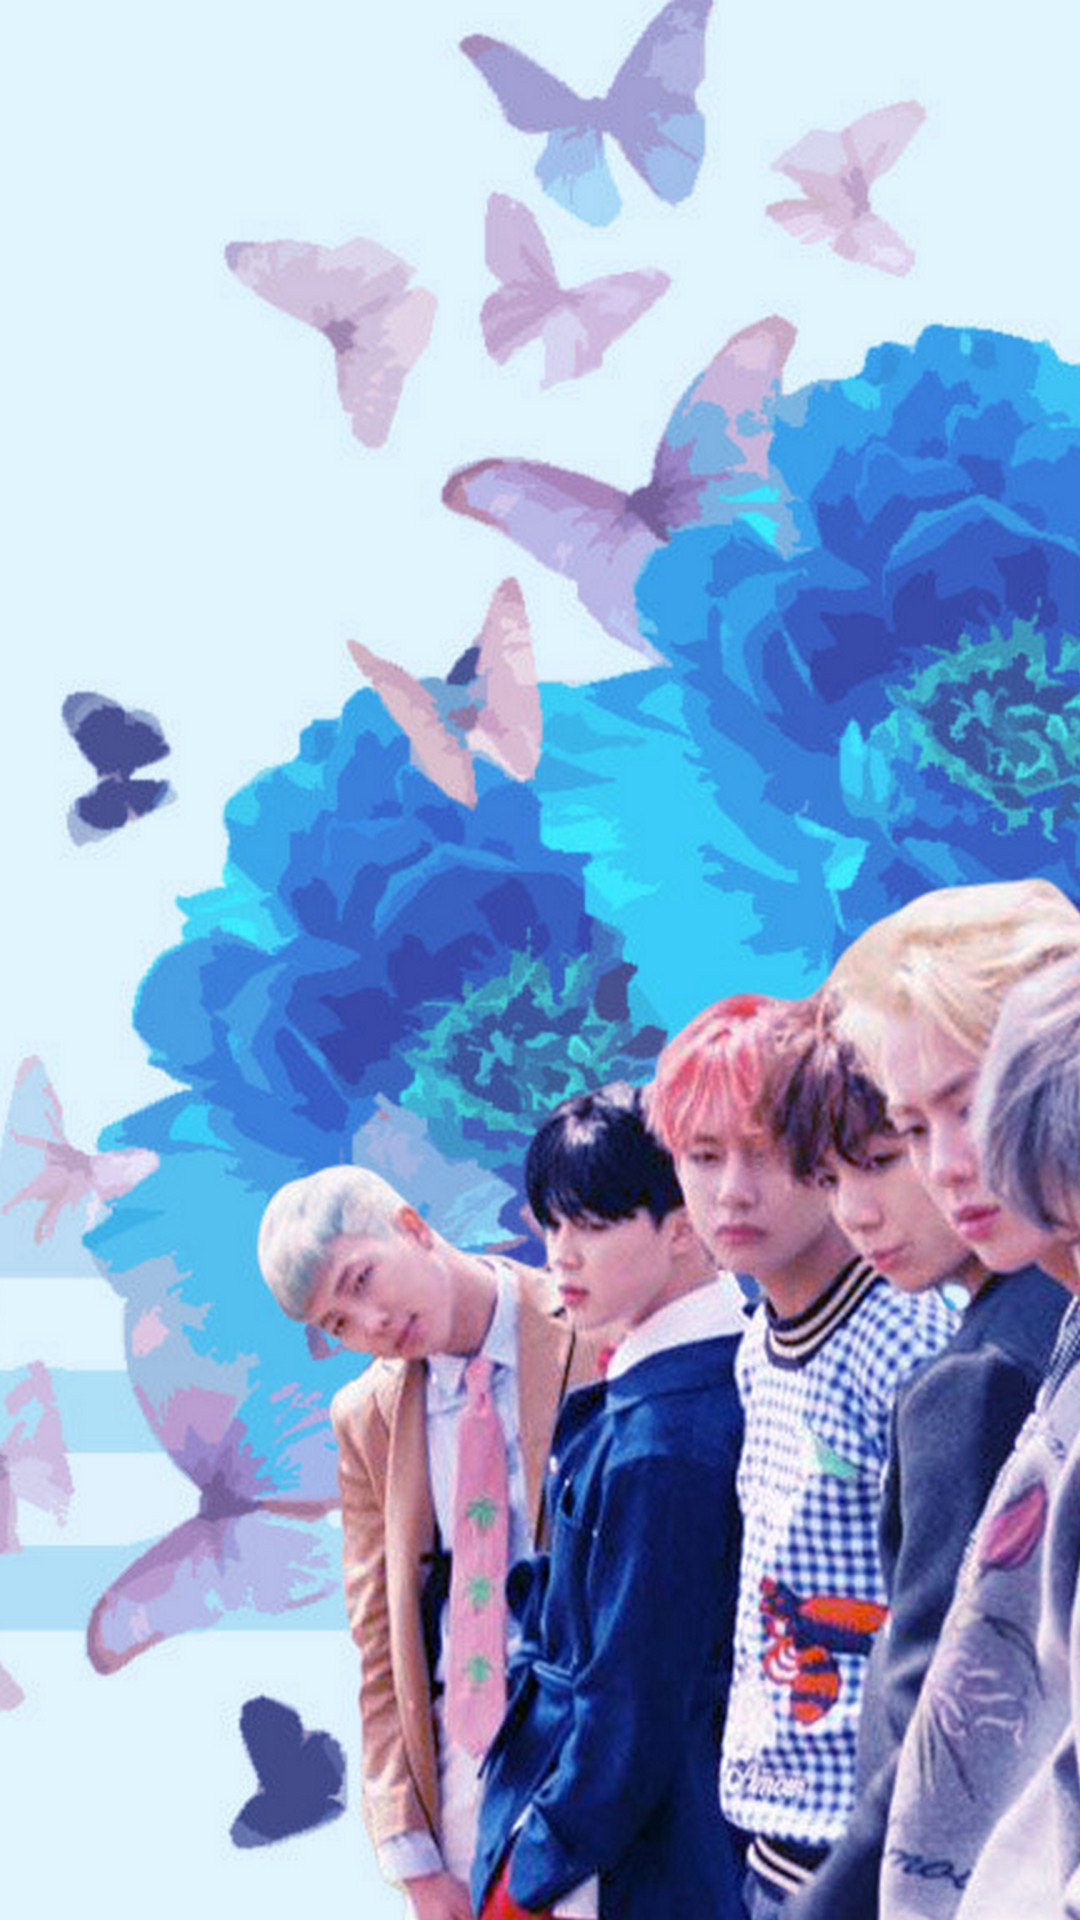 Android Wallpaper BTS   2020 Android Wallpapers 1080x1920